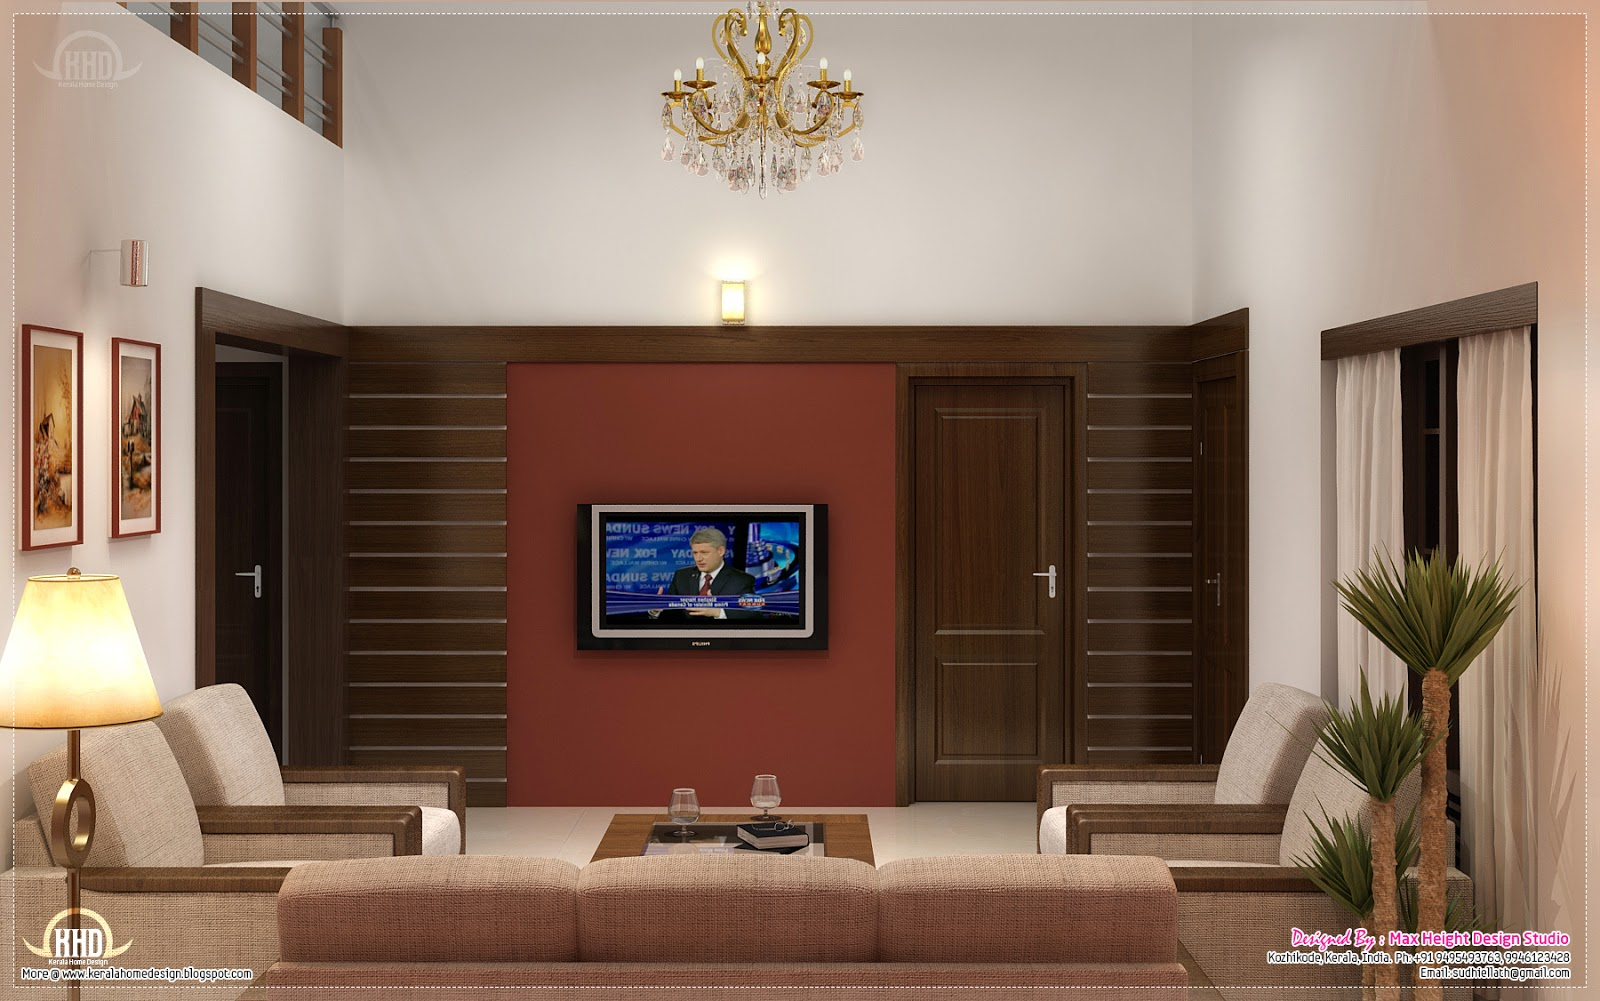 Home interior design ideas home kerala plans for House design interior decorating